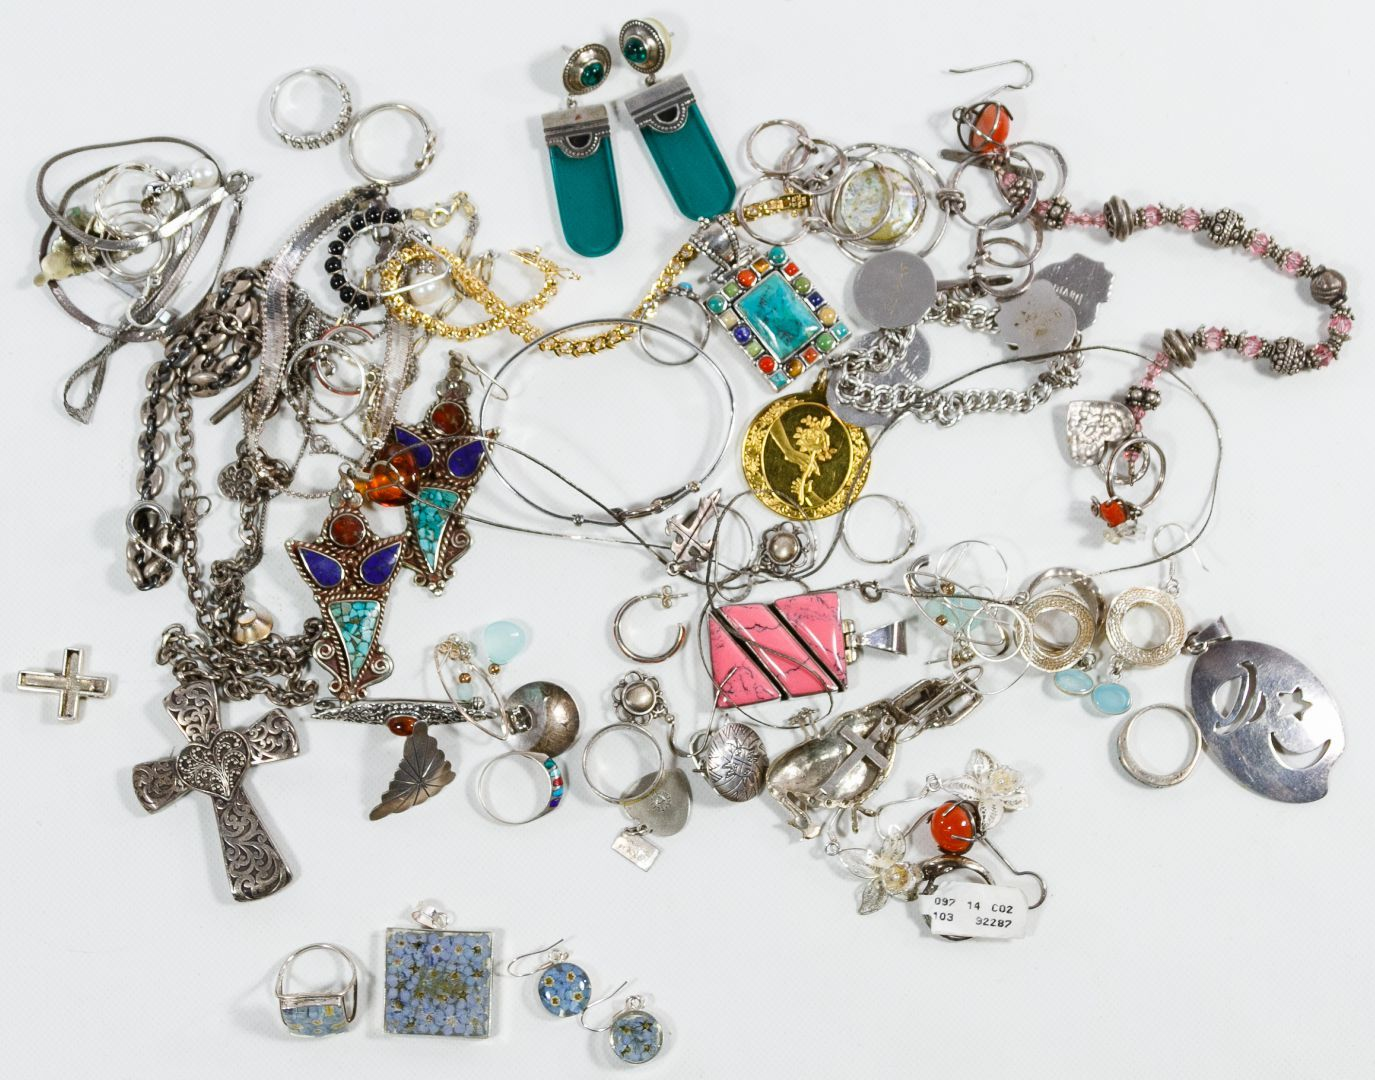 e469c5b35 Lot 427: Sterling Silver Jewelry Assortment; Including pendants, earrings  and bracelets; all marked